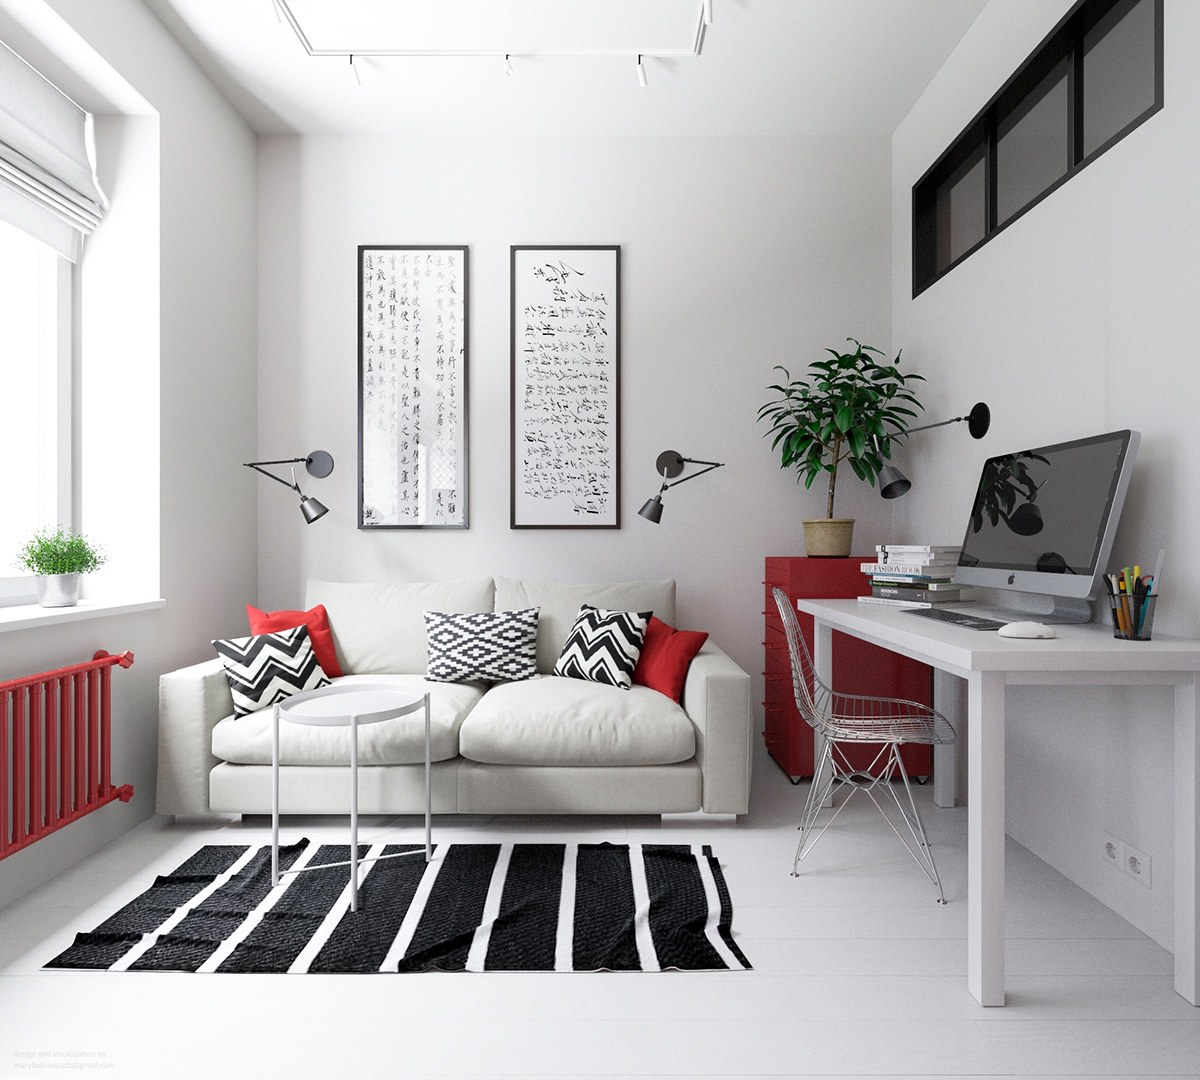 3 Small Apartments That Rock Uncommon Color Schemes [With Floor Plans]